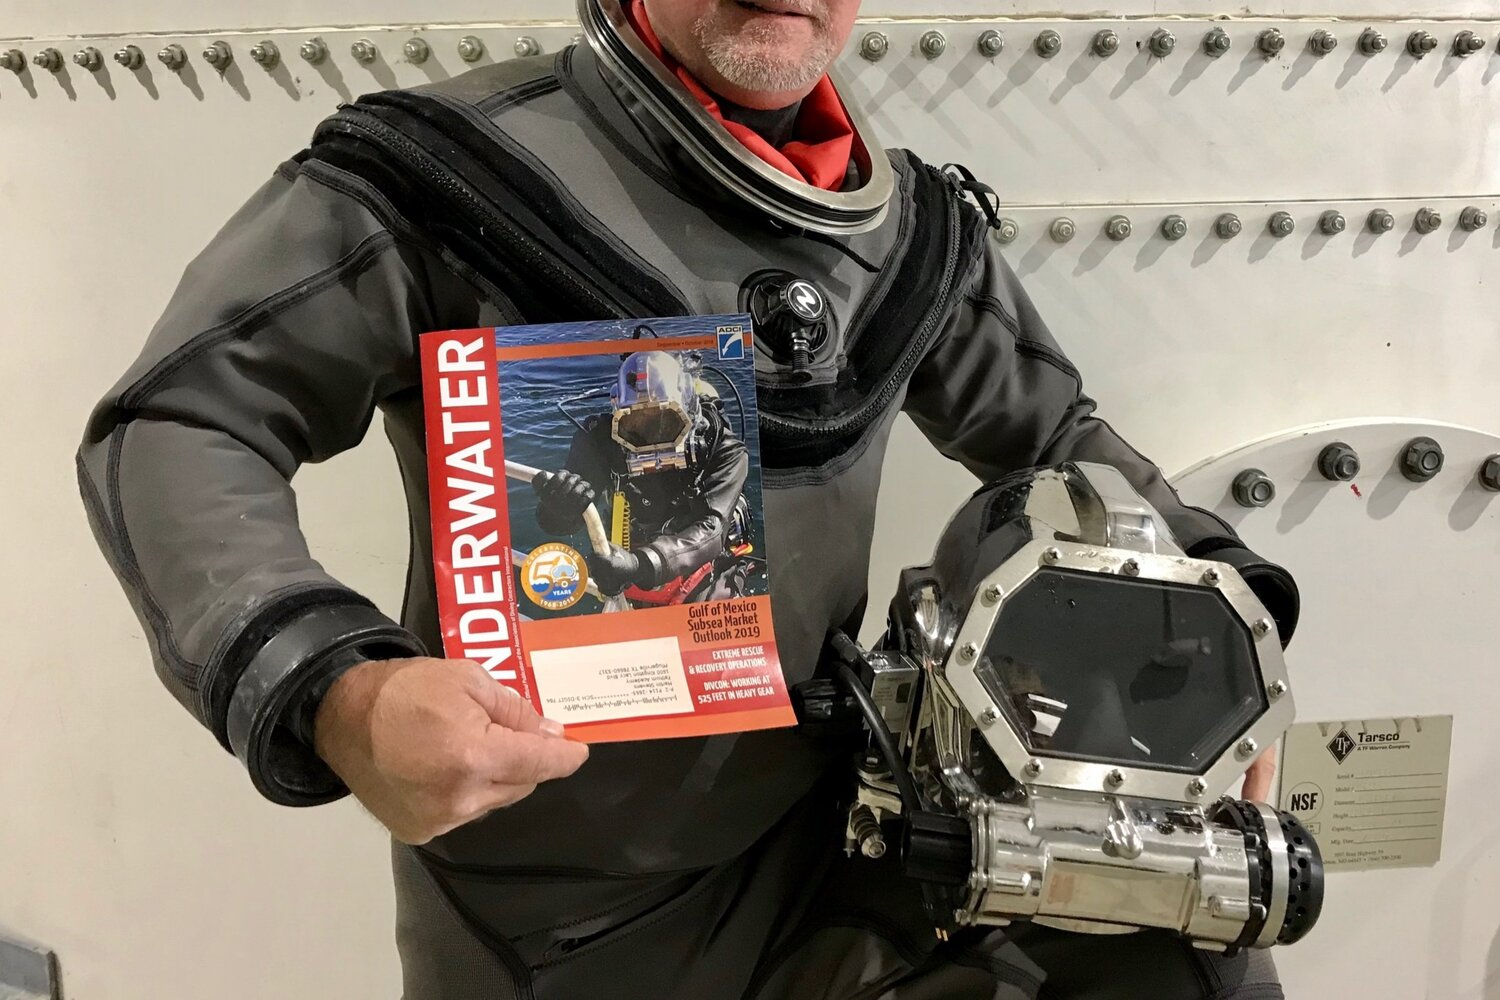 Opifex Global's first underwater space training suit was custom-made by Aqualung; the helmets were provided by Gorski. The training suit made the cover of Underwater Magazine.